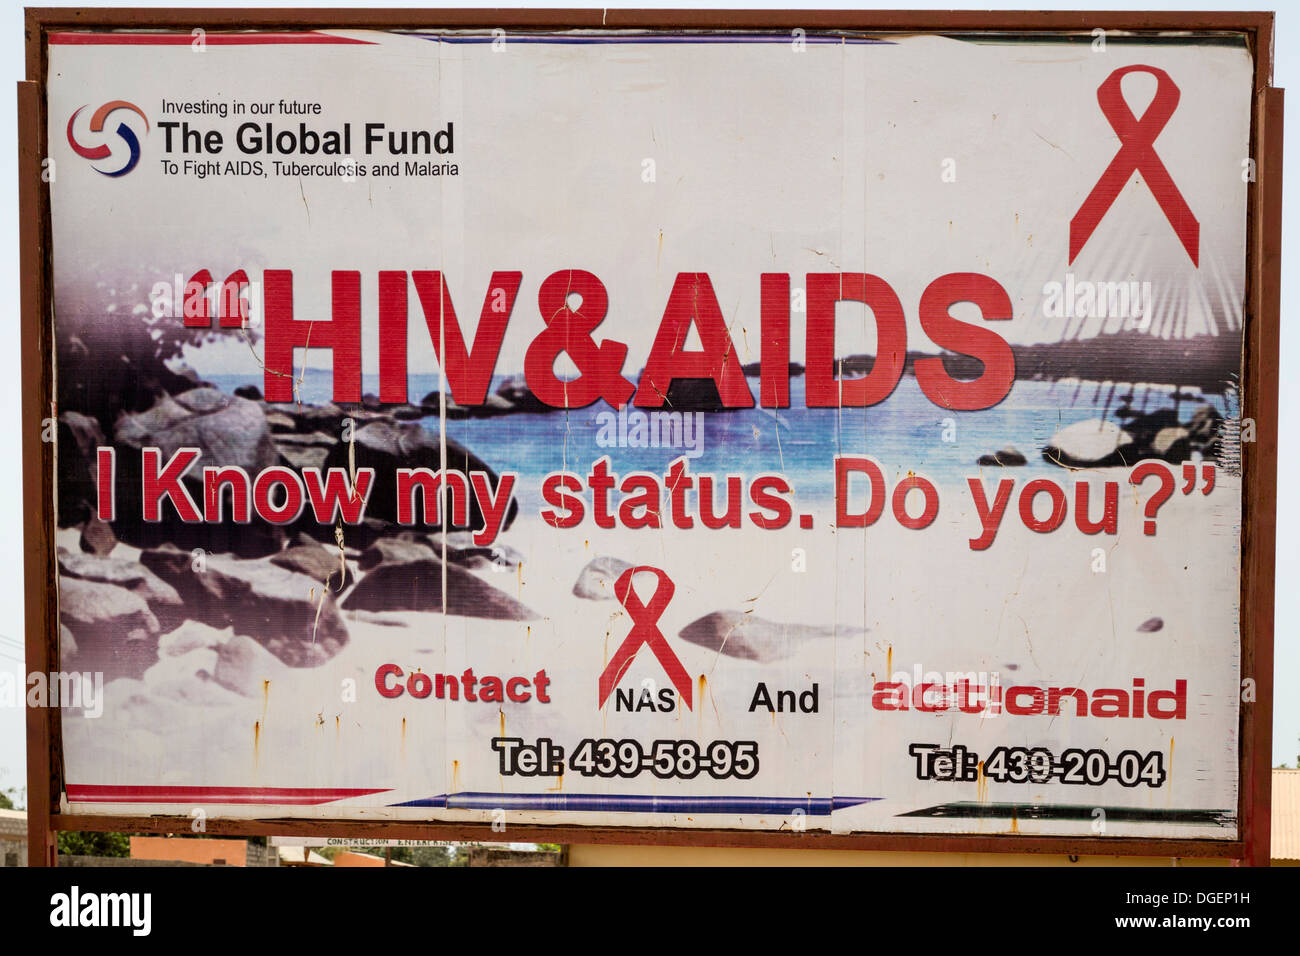 hiv and aids education Hiv/aids (mayo foundation for medical education and research) hiv/aids basics (centers for disease control and prevention)  hiv vaccines (aidsgov) hiv/aids .